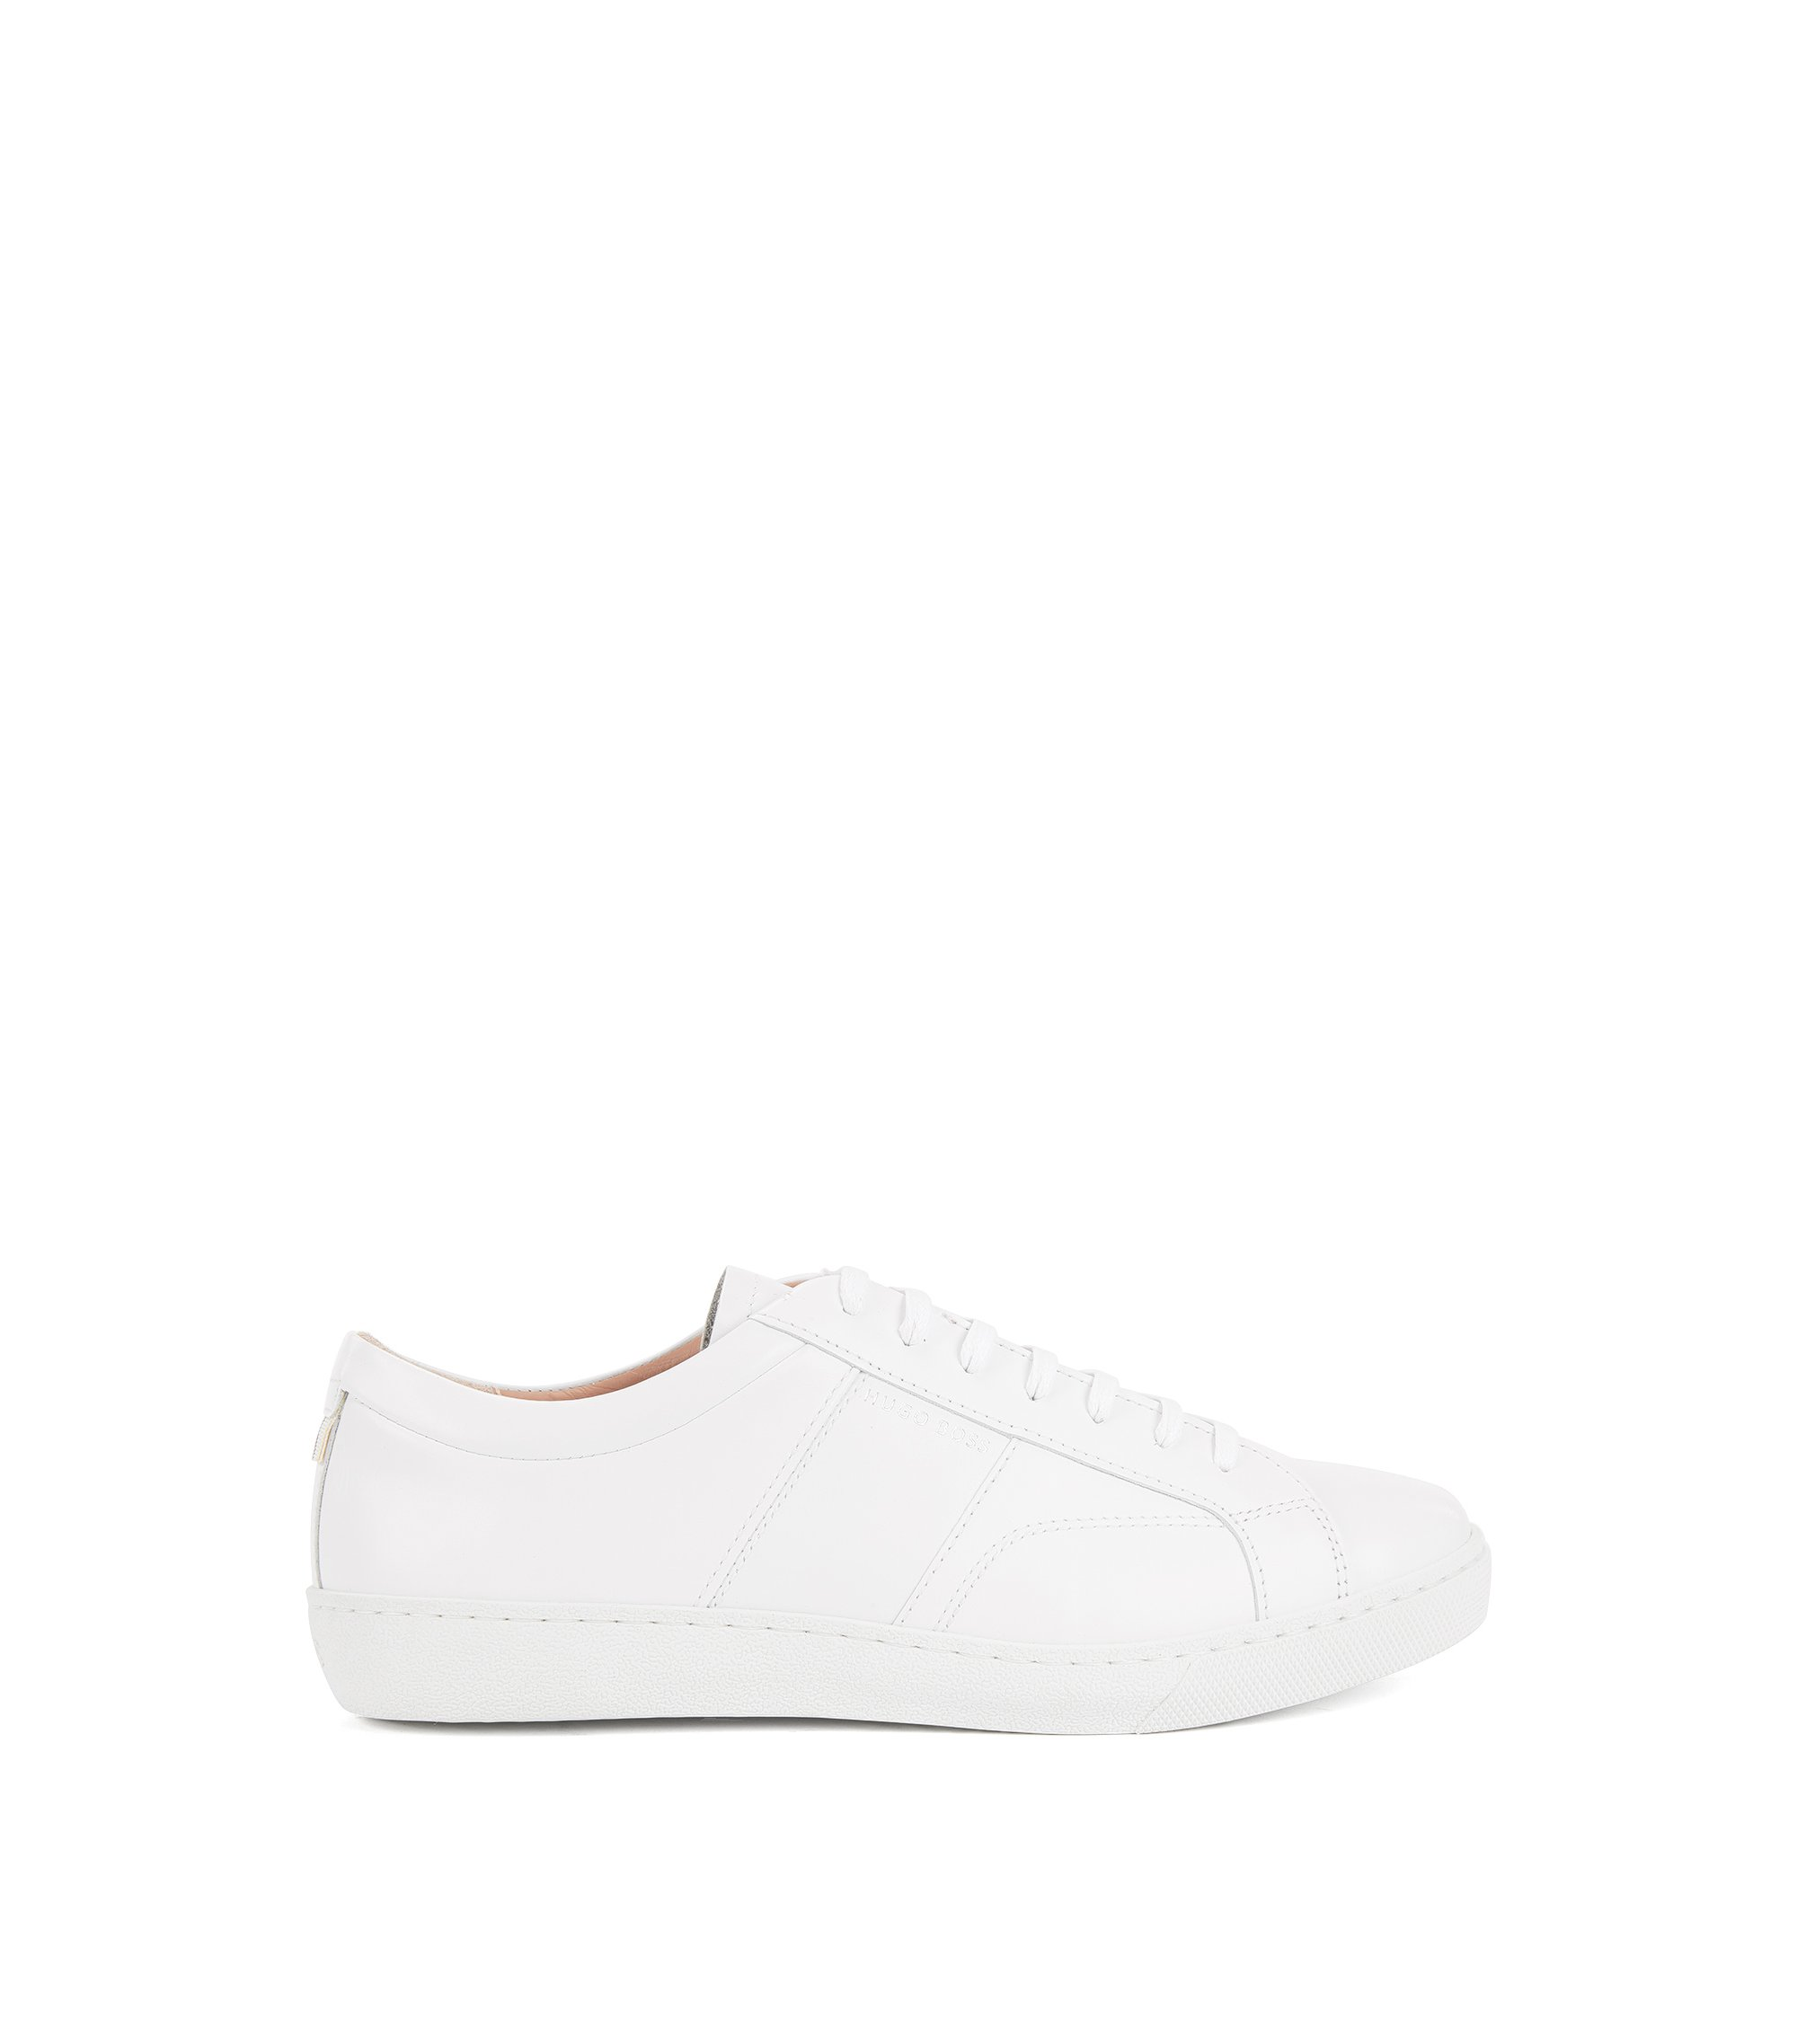 Low-top sneakers in Italian leather, White